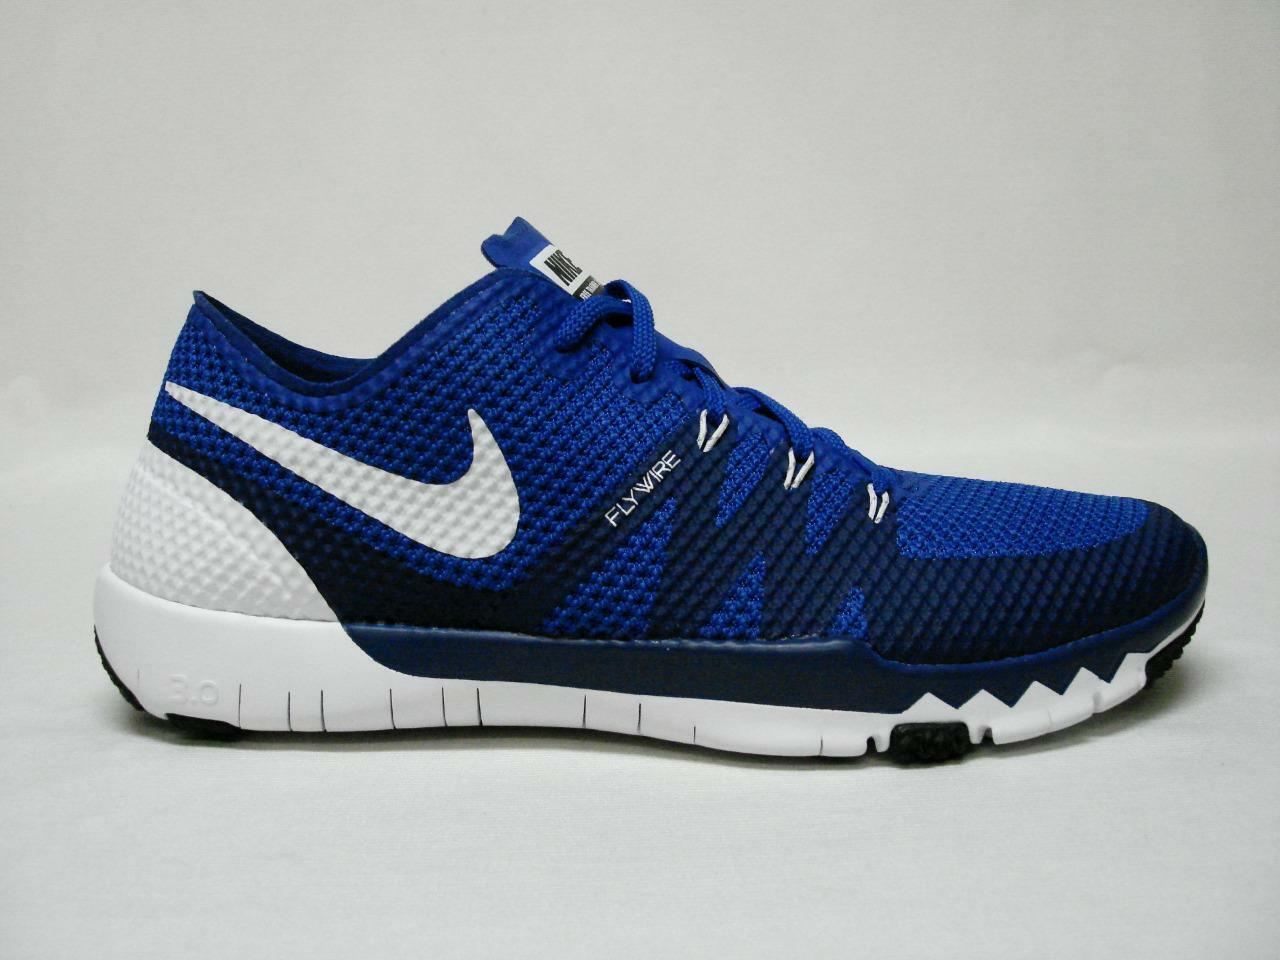 Brand discount NEW NIKE FREE TRAINER 3.0 V3 MEN'S SHOE'S 11.5 BLUE SWEET LOOKING SHOE'S